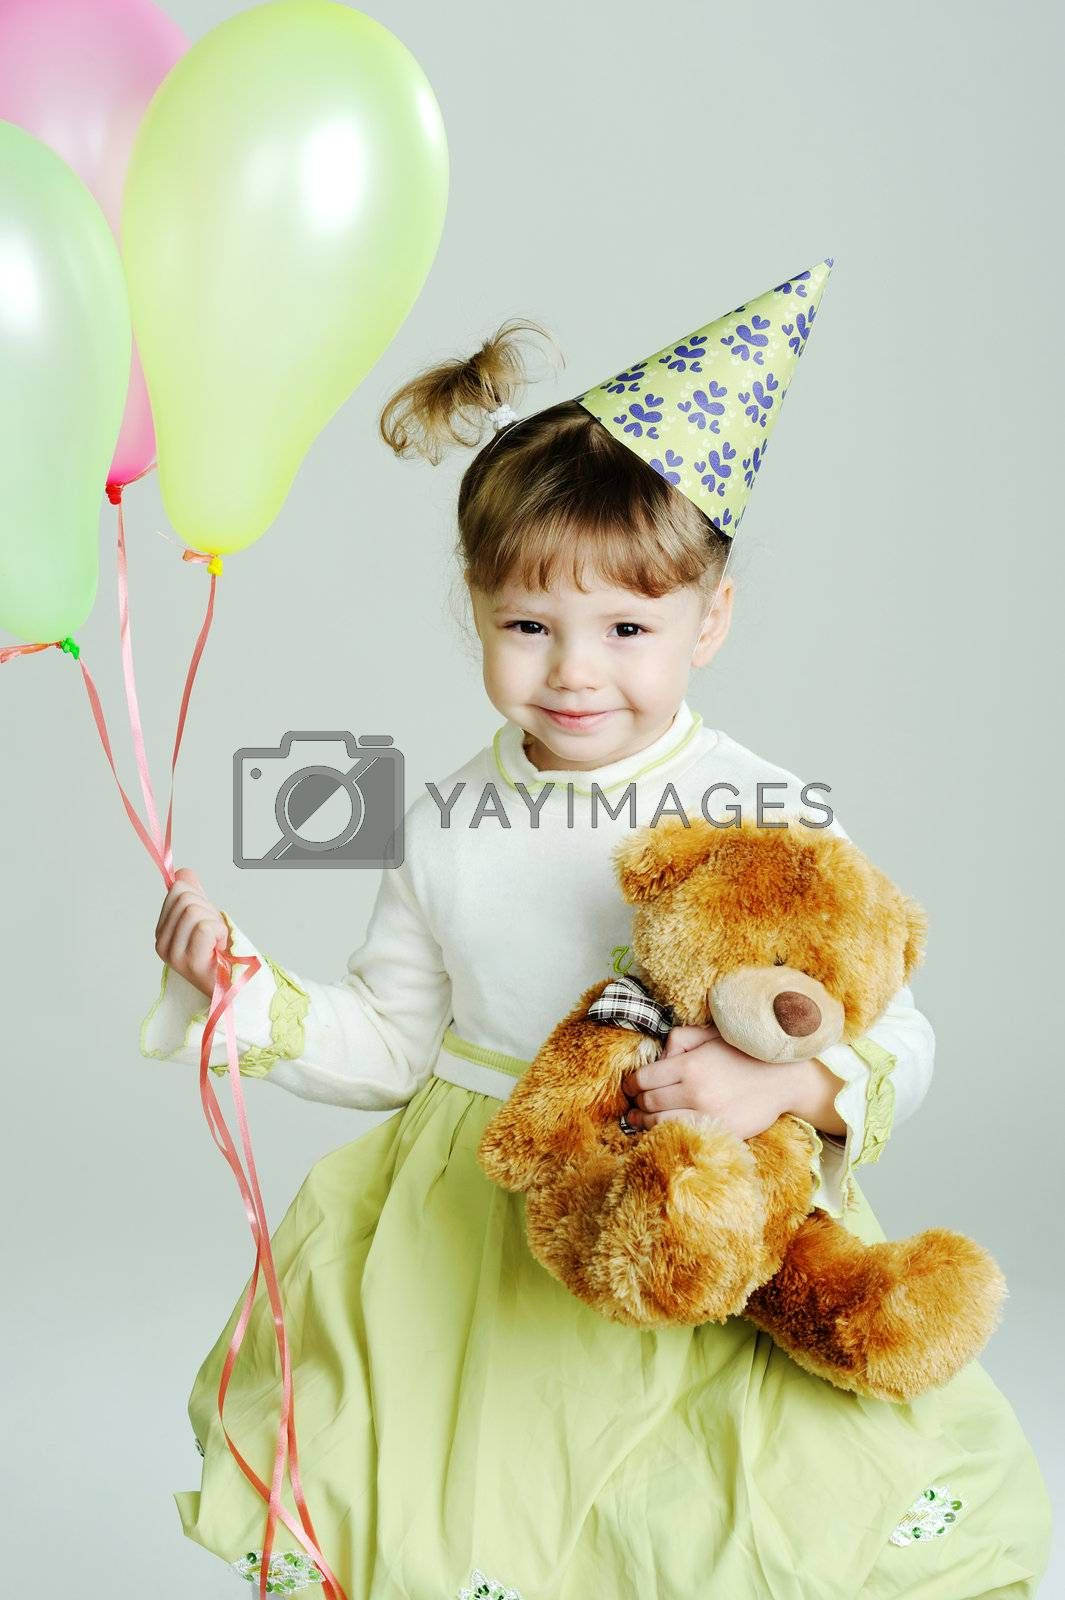 A portrait of a little girl with a teddy-bear and balloons